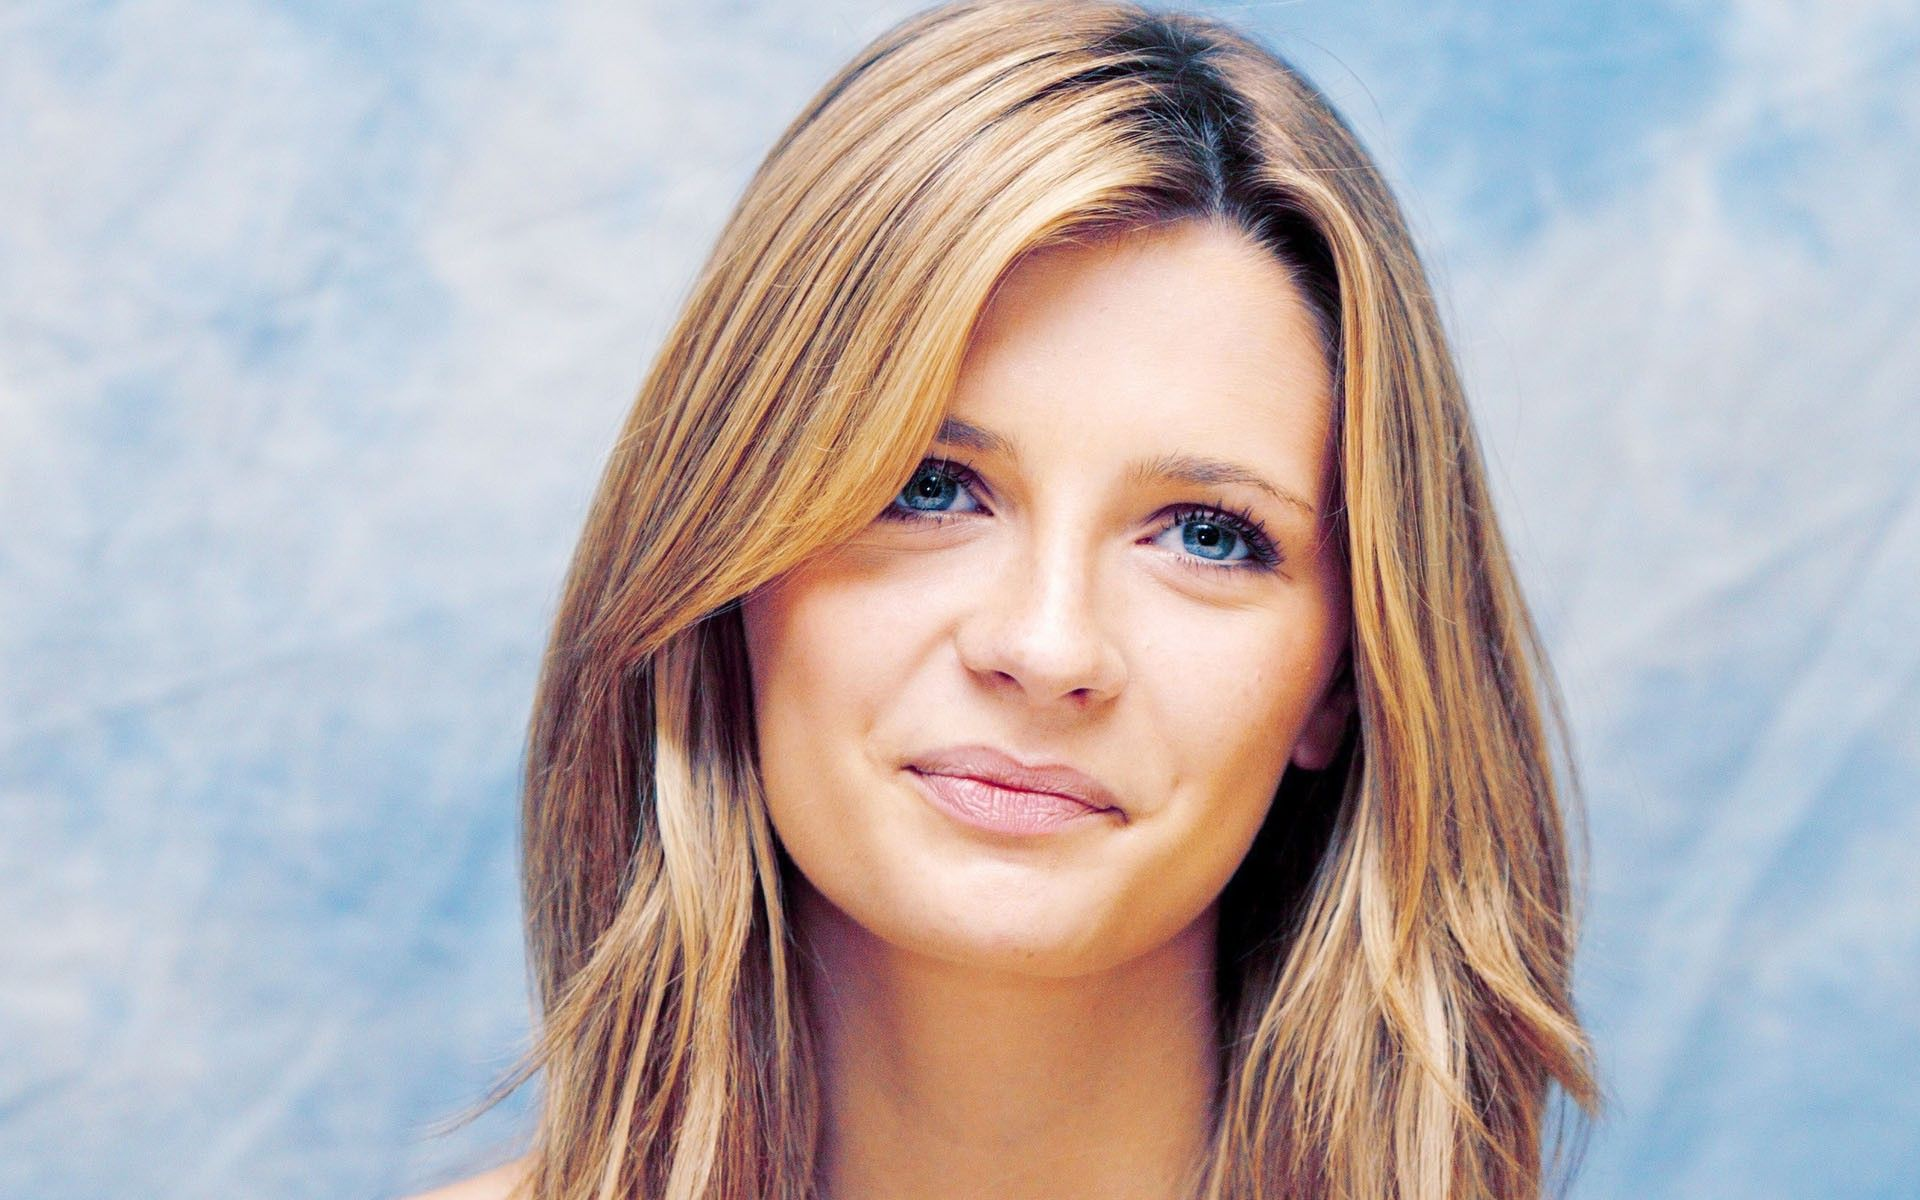 Mischa Barton free wallpapers